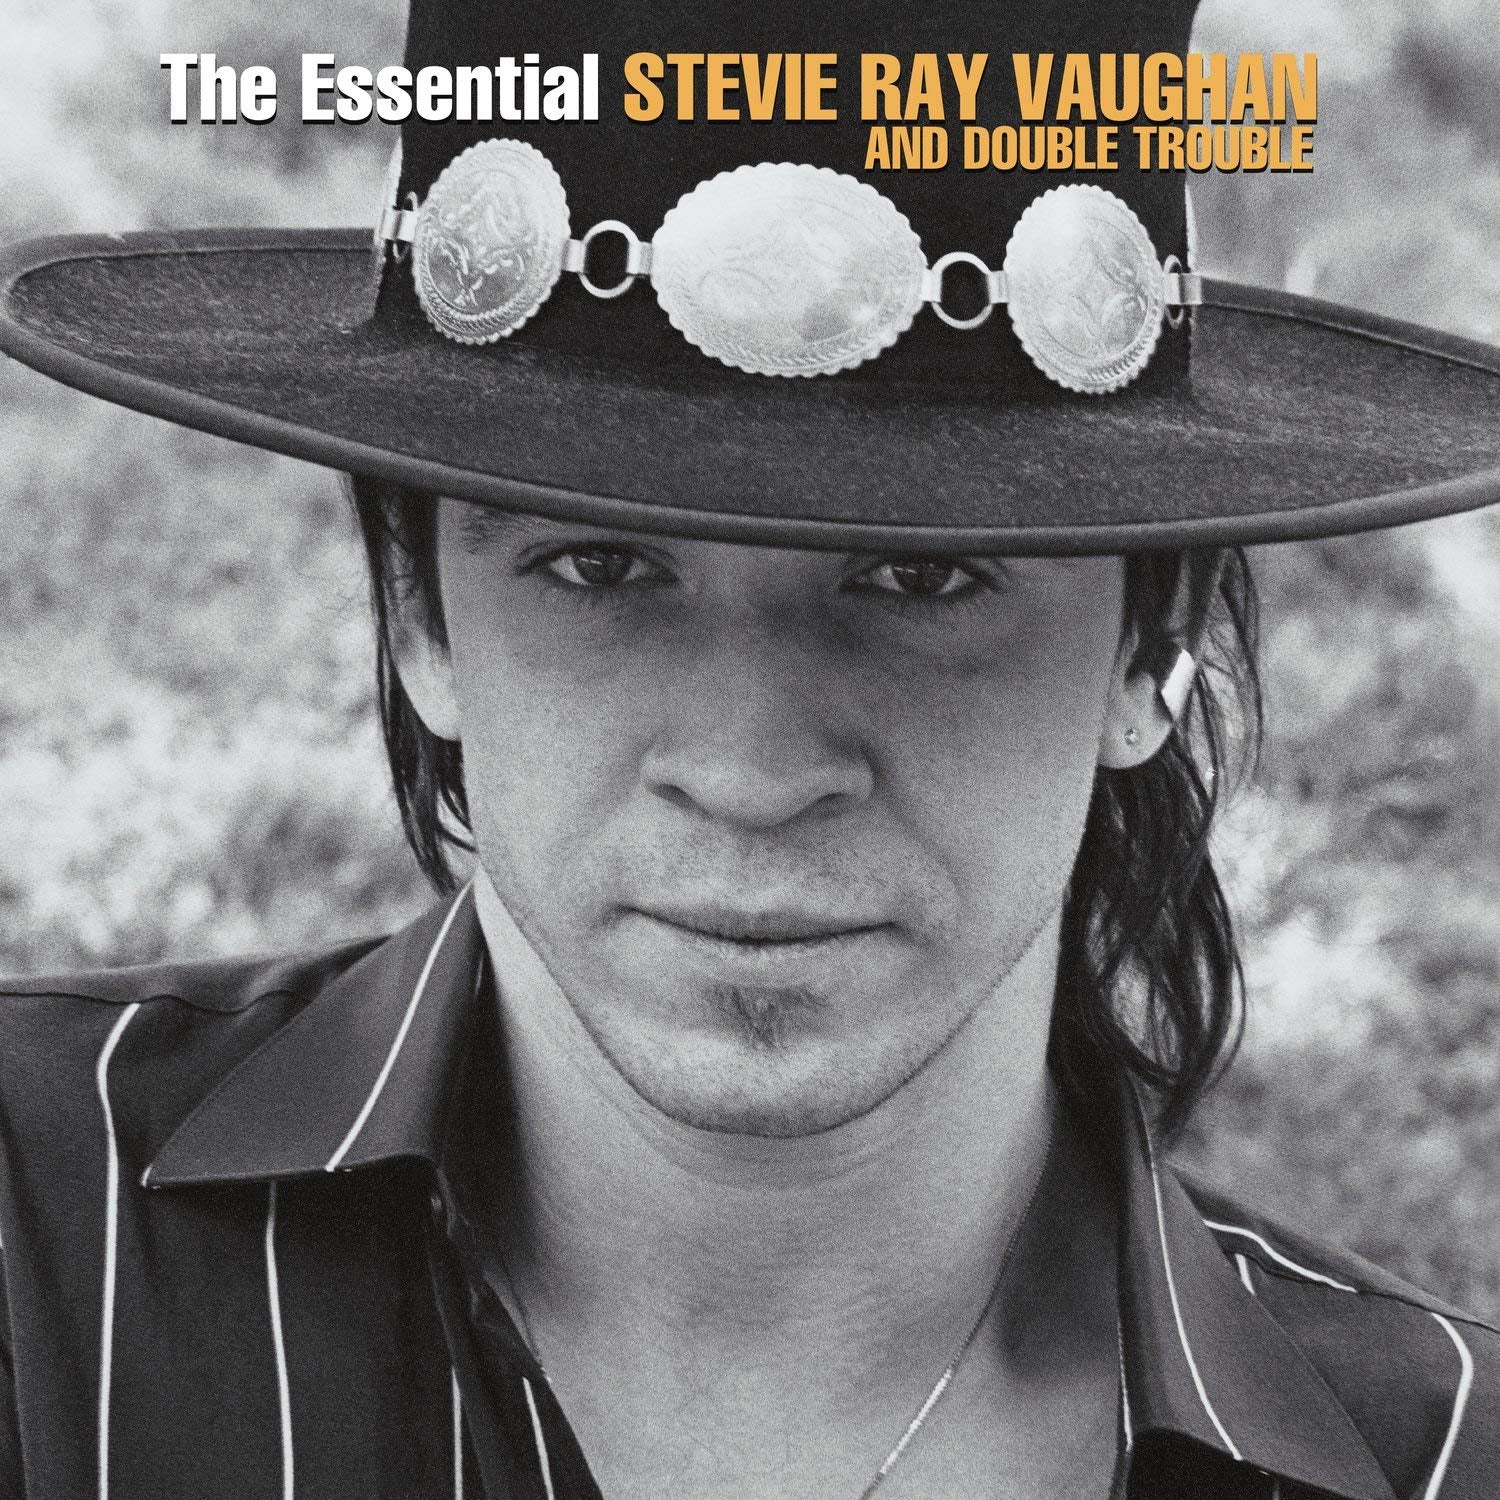 THE ESSENTIAL STEVIE RAY VAUGHAN AND DOUBLE TROUBLE (VINYL) - Vinyl Sound